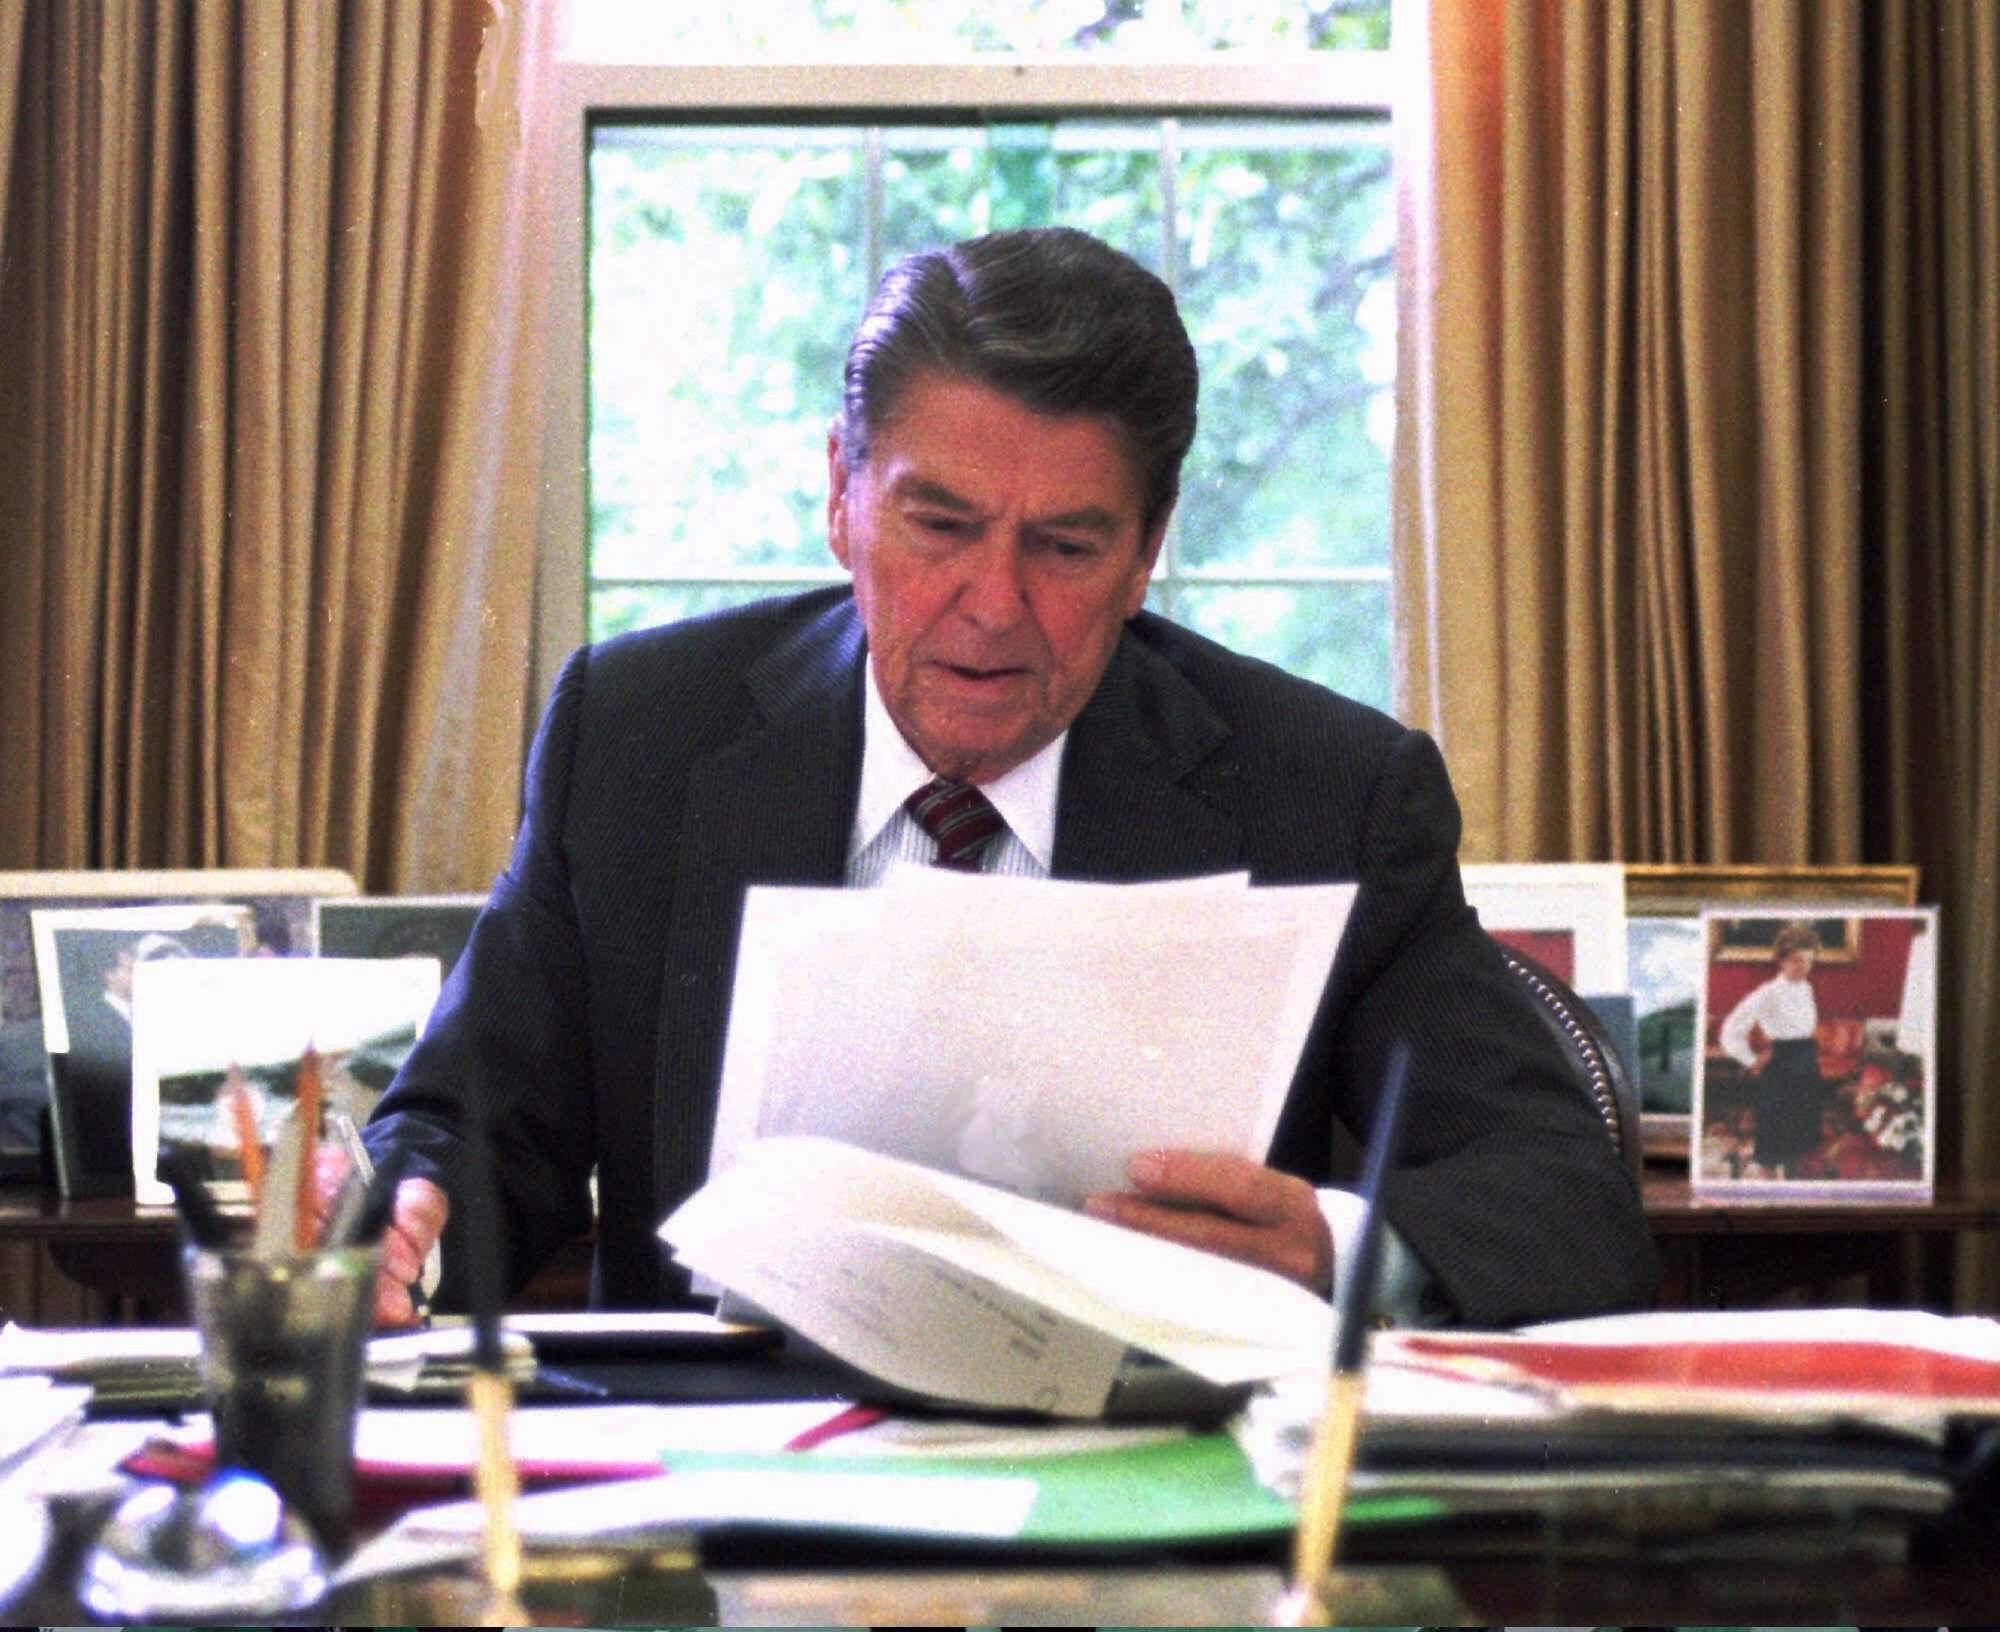 A 1987 file photo of President Ronald Reagan in the Oval Office. John Hinckley, who was found not guilty of insanity for shooting Reagan and three others in March 1981, has been approved for release from a mental institution with restrictions. (AP file photo)